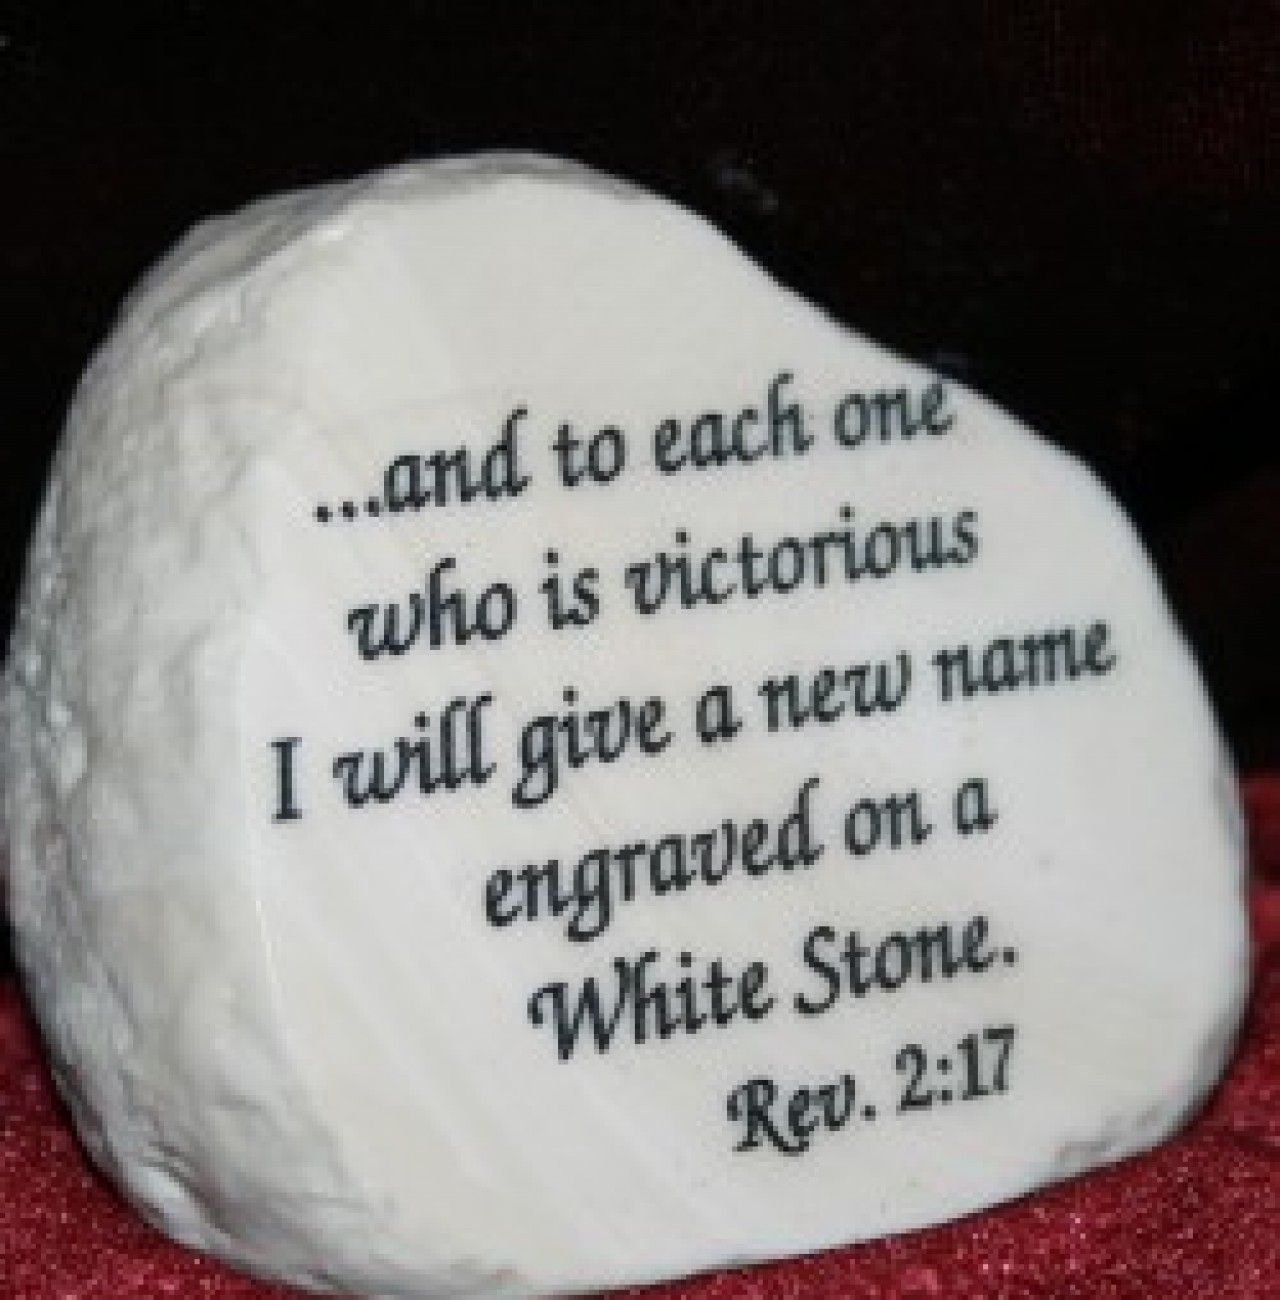 Pin by Christina Medrano on Thought for the Day | White stone, Scripture print, Cs lewis quotes